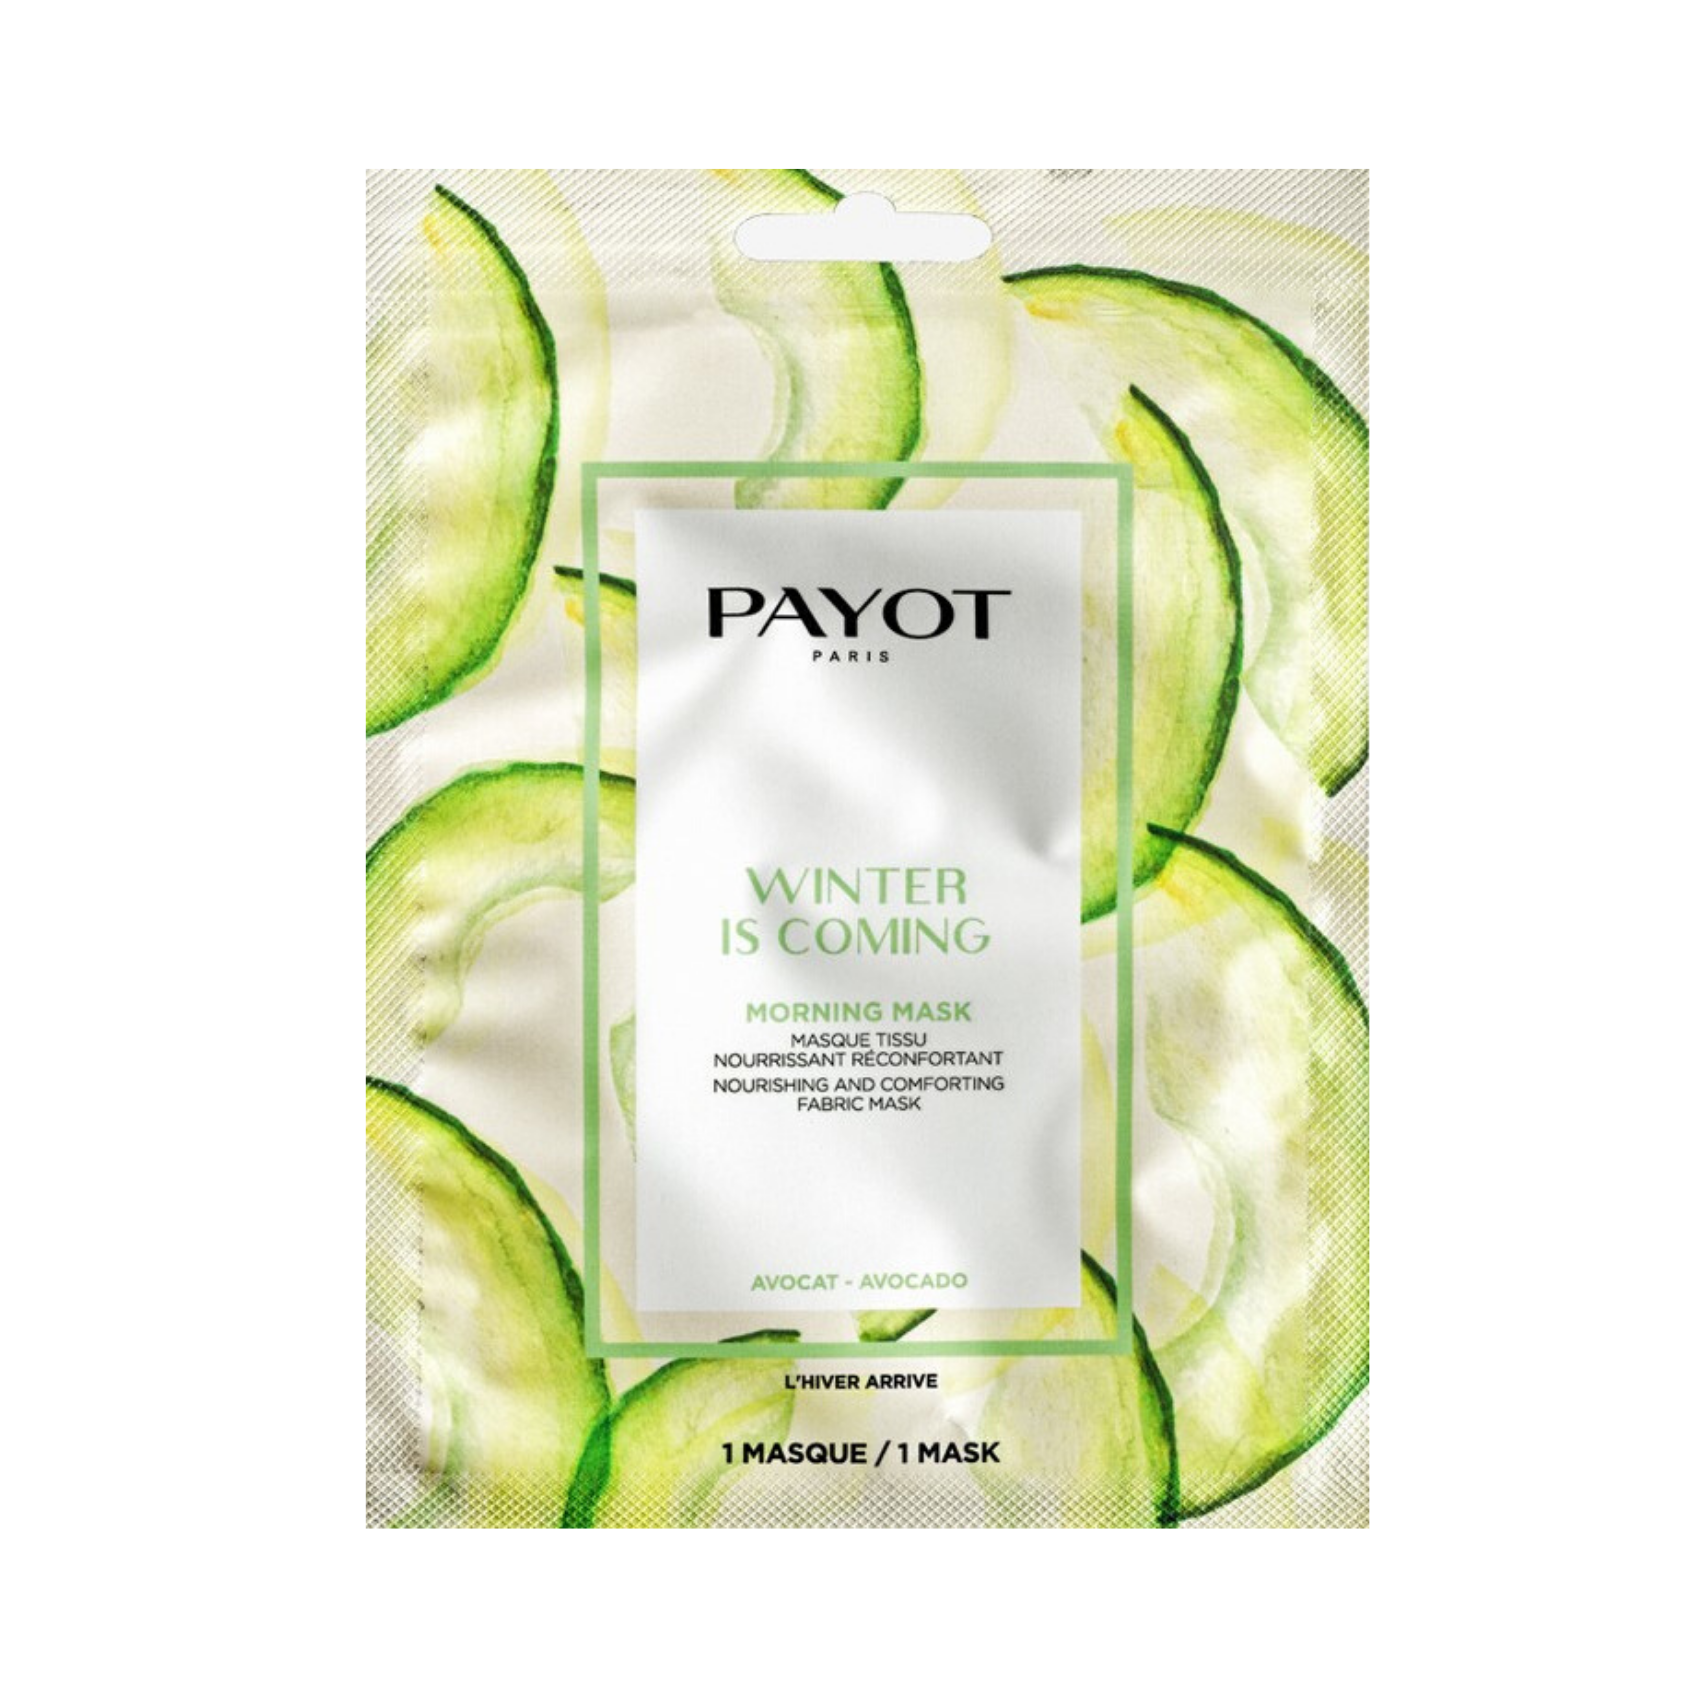 Payot Morning Mask - Winter Is Coming